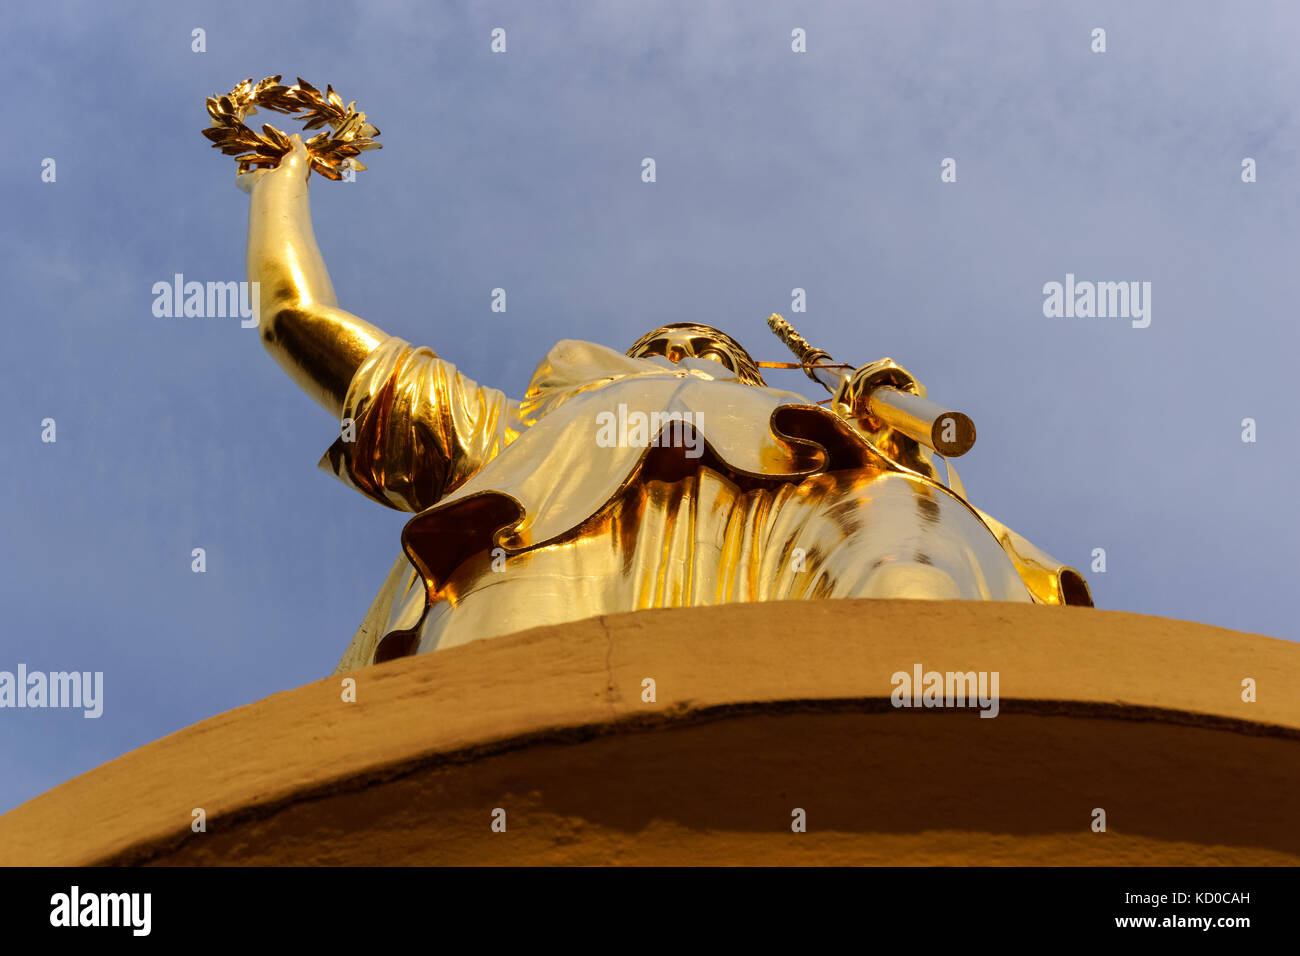 The statue of Victoria on the top of the Victory Column in Berlin, Germany - Stock Image